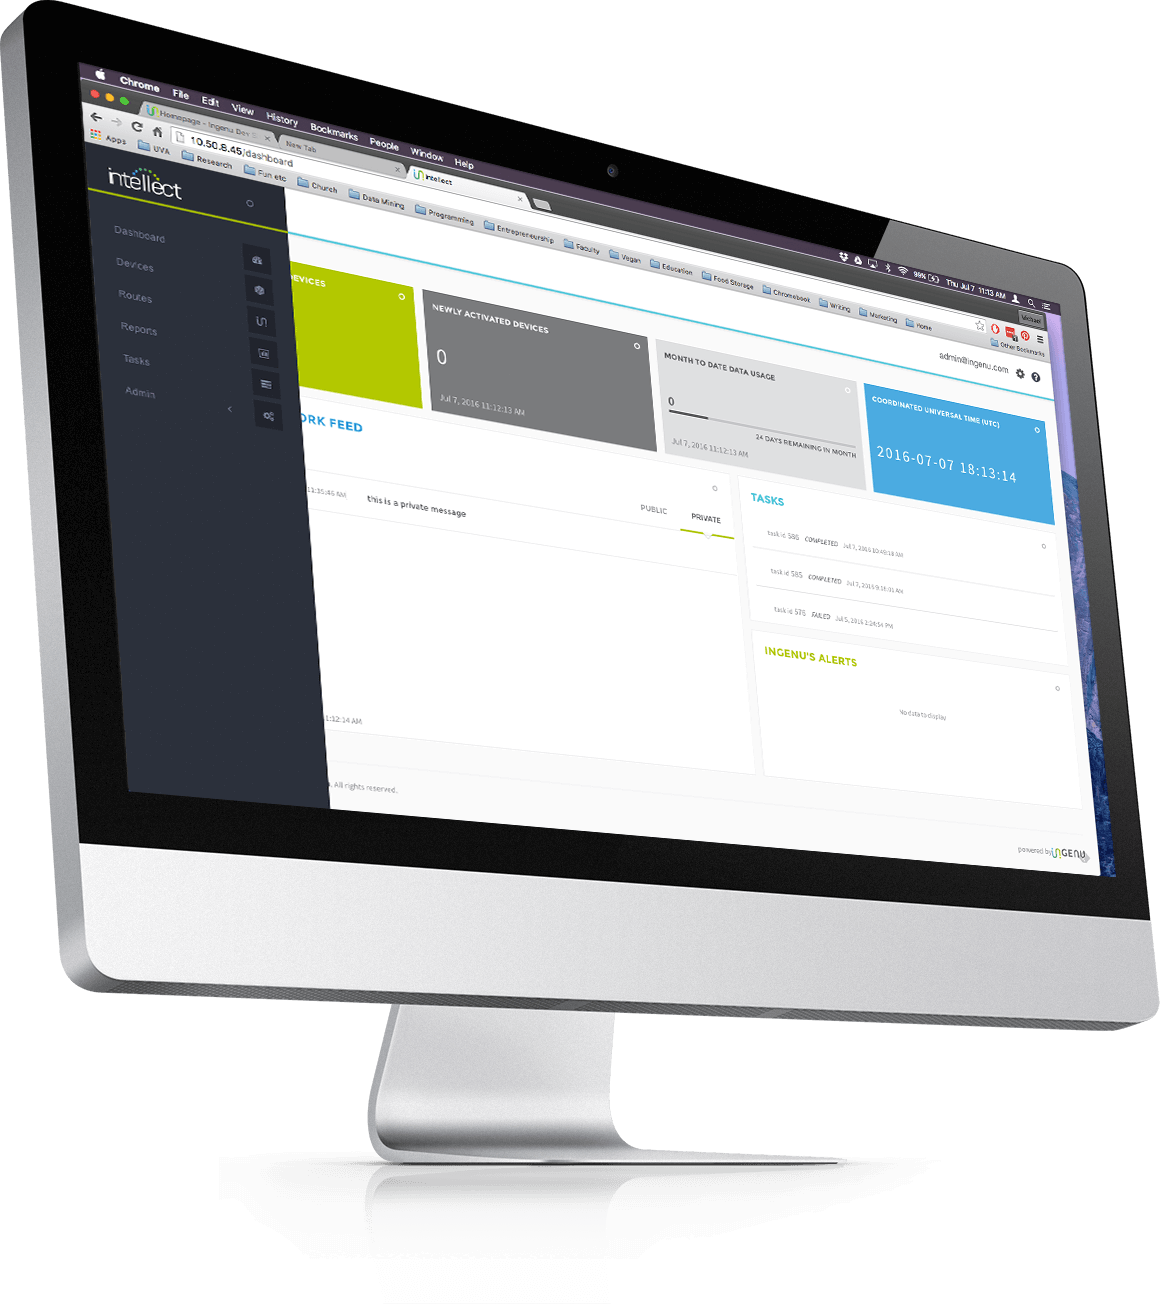 Intellect makes all of your devices easy to manage.